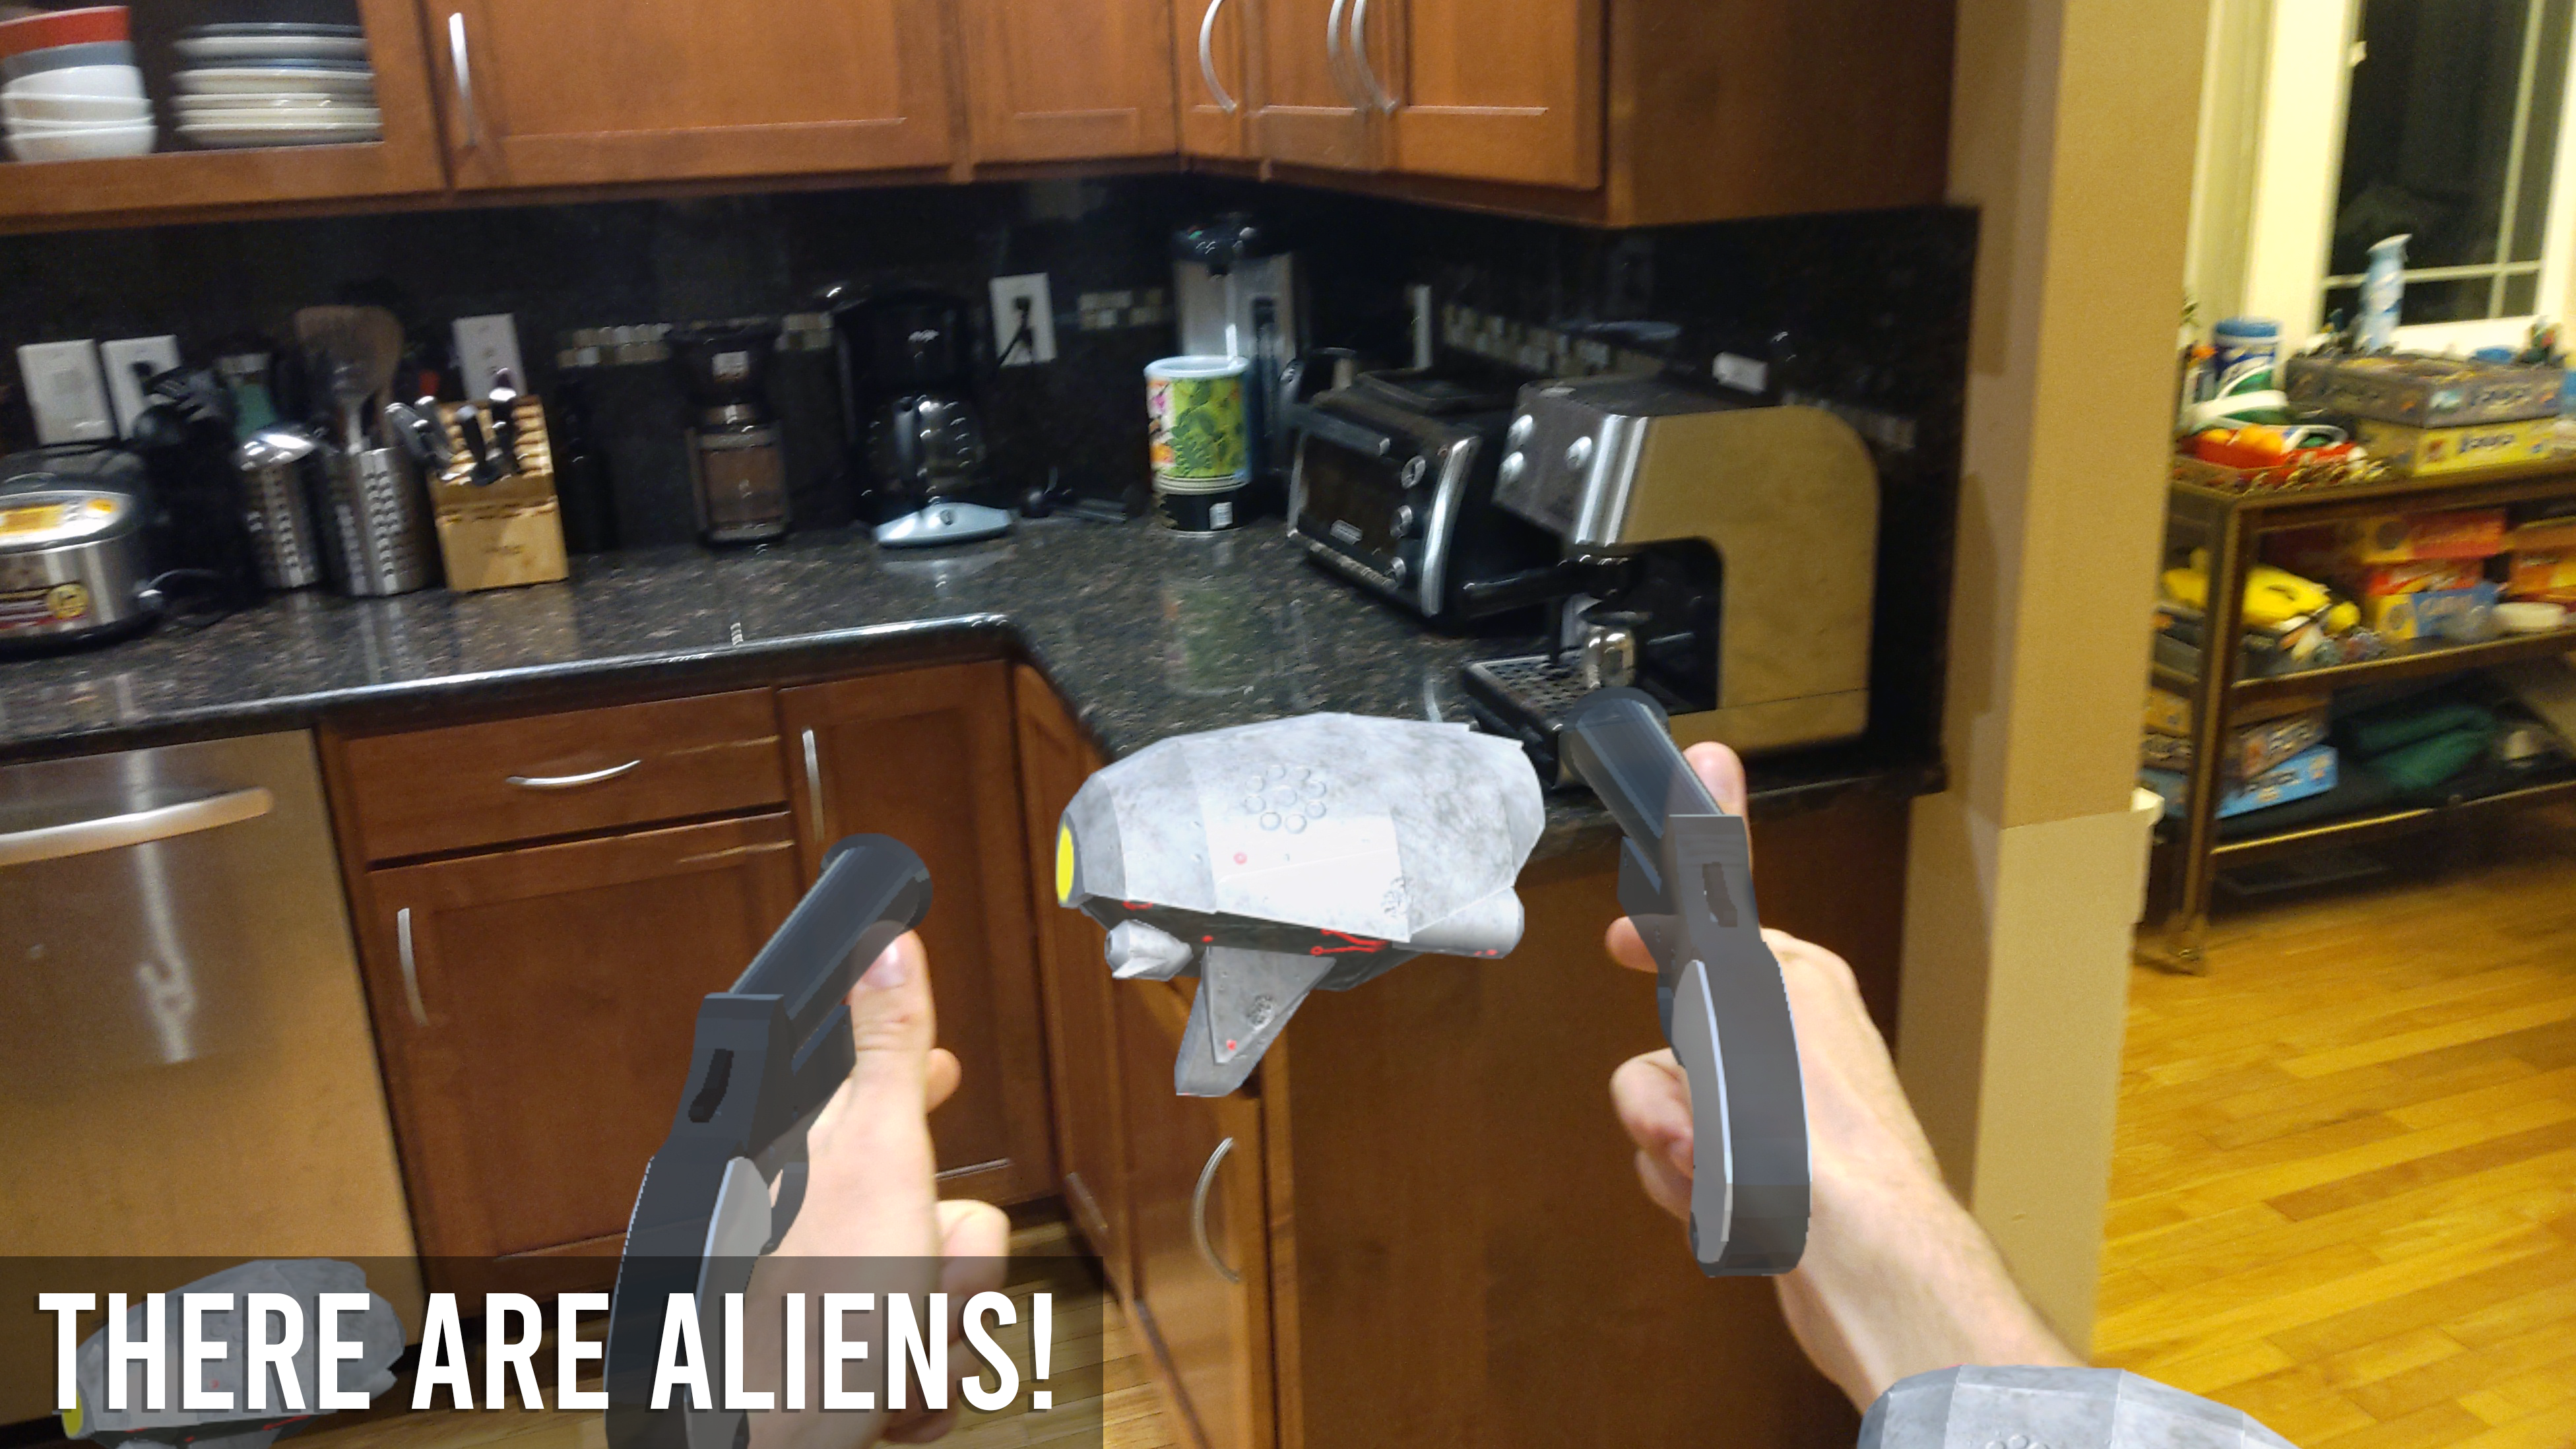 There are aliens!